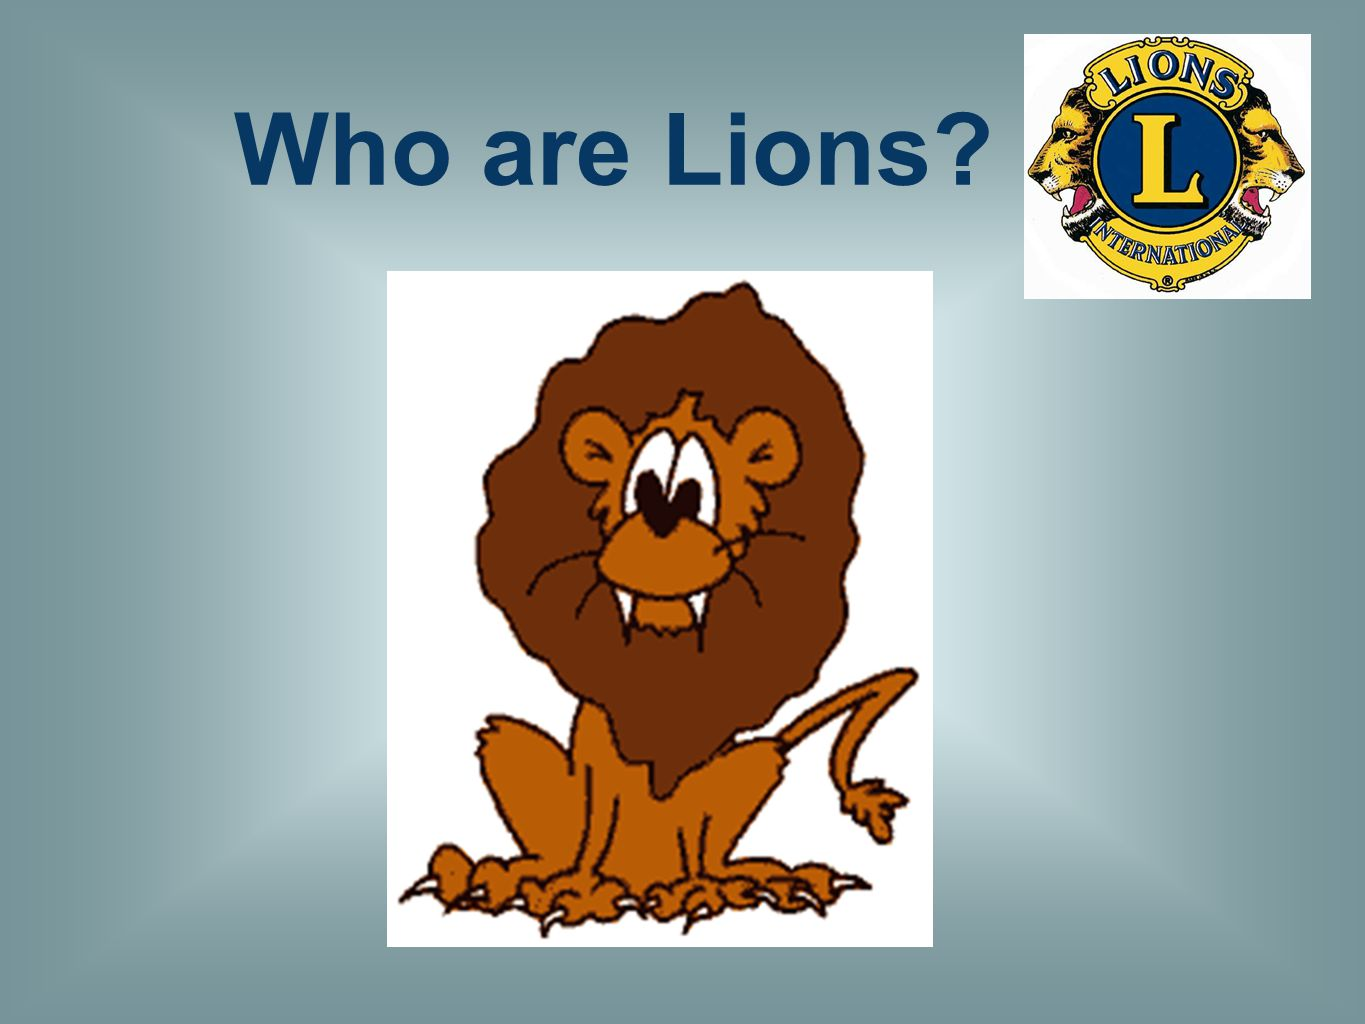 Who are Lions?